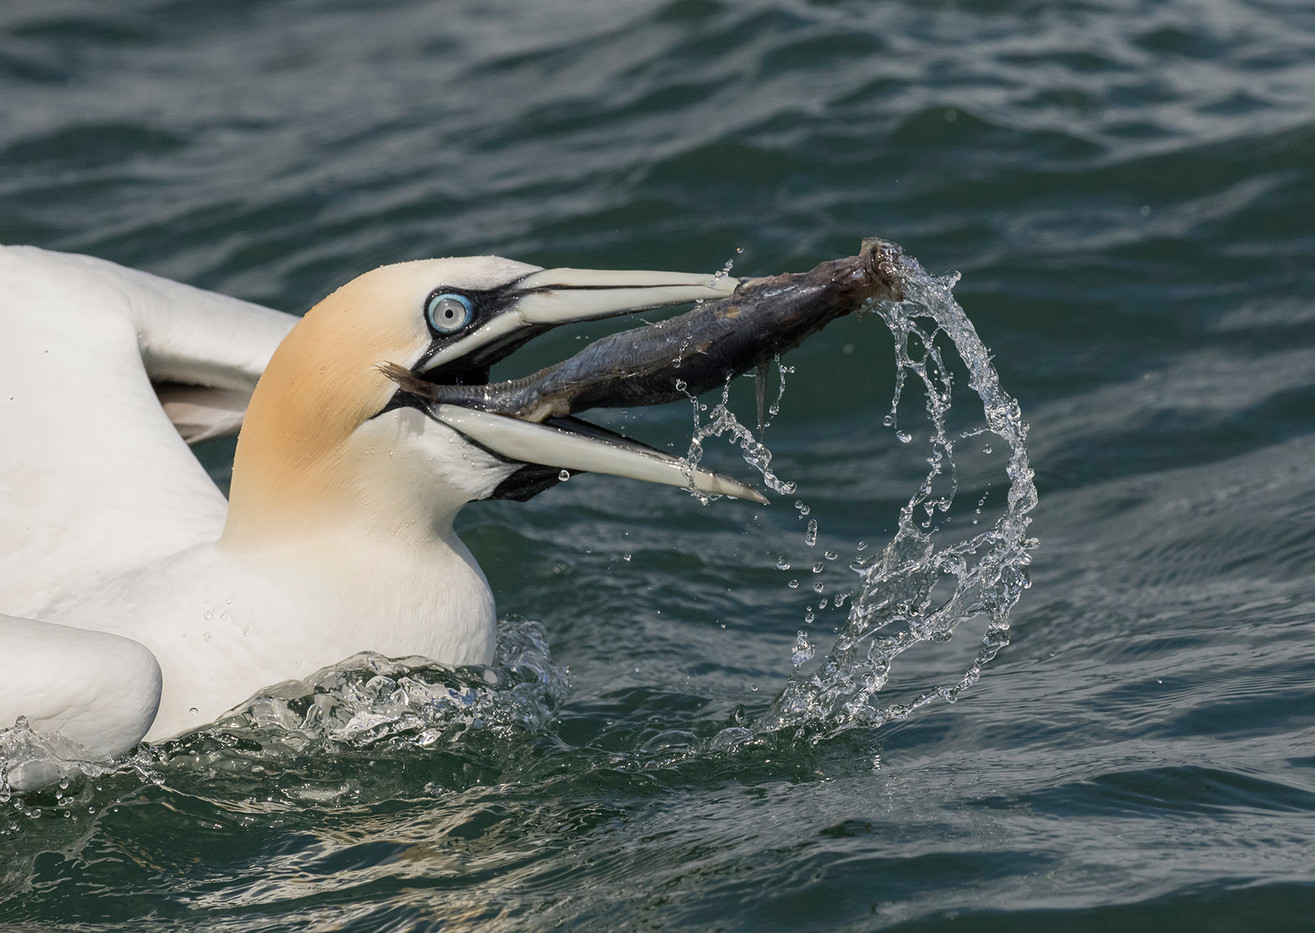 20 GANNET WITH CATCH by Glenn Welch